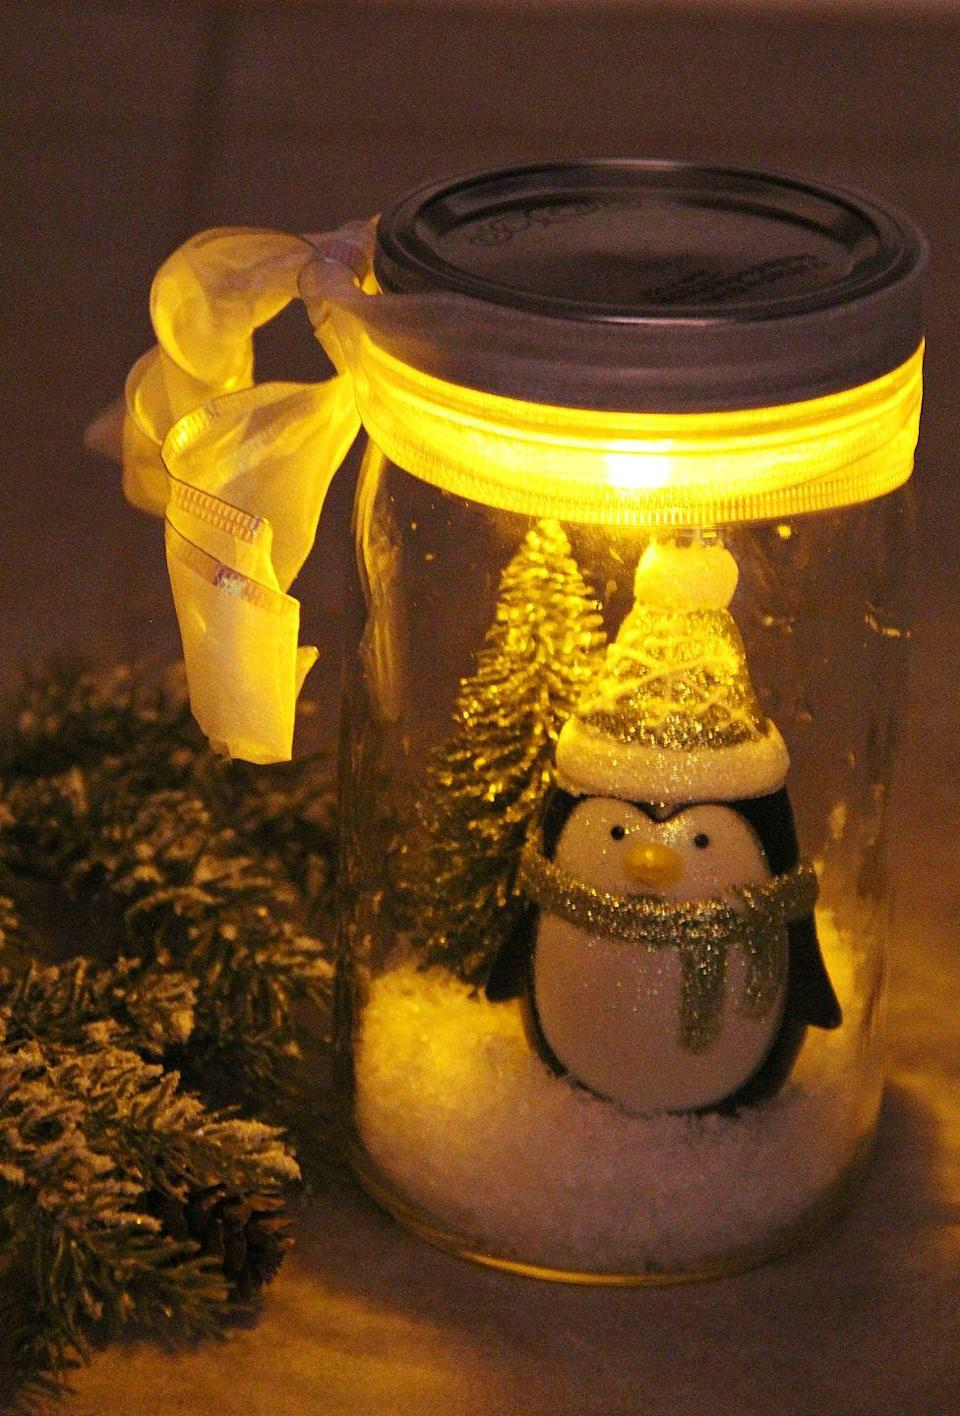 """<p>These tiny jars can double as the cutest Christmas nightlight for your little ones. </p><p><strong>Get the tutorial at <a href=""""http://bitzngiggles.com/2013/11/illuminated-snow-scene-in-a-jar.html"""" rel=""""nofollow noopener"""" target=""""_blank"""" data-ylk=""""slk:Bitz & Giggles"""" class=""""link rapid-noclick-resp"""">Bitz & Giggles</a>.</strong></p><p><a class=""""link rapid-noclick-resp"""" href=""""https://www.amazon.com/FloraCraft-4-Liters-Plastic-Snow/dp/B000XZY0OY/?tag=syn-yahoo-20&ascsubtag=%5Bartid%7C10050.g.2132%5Bsrc%7Cyahoo-us"""" rel=""""nofollow noopener"""" target=""""_blank"""" data-ylk=""""slk:SHOP ARTIFICIAL SNOW"""">SHOP ARTIFICIAL SNOW</a></p>"""